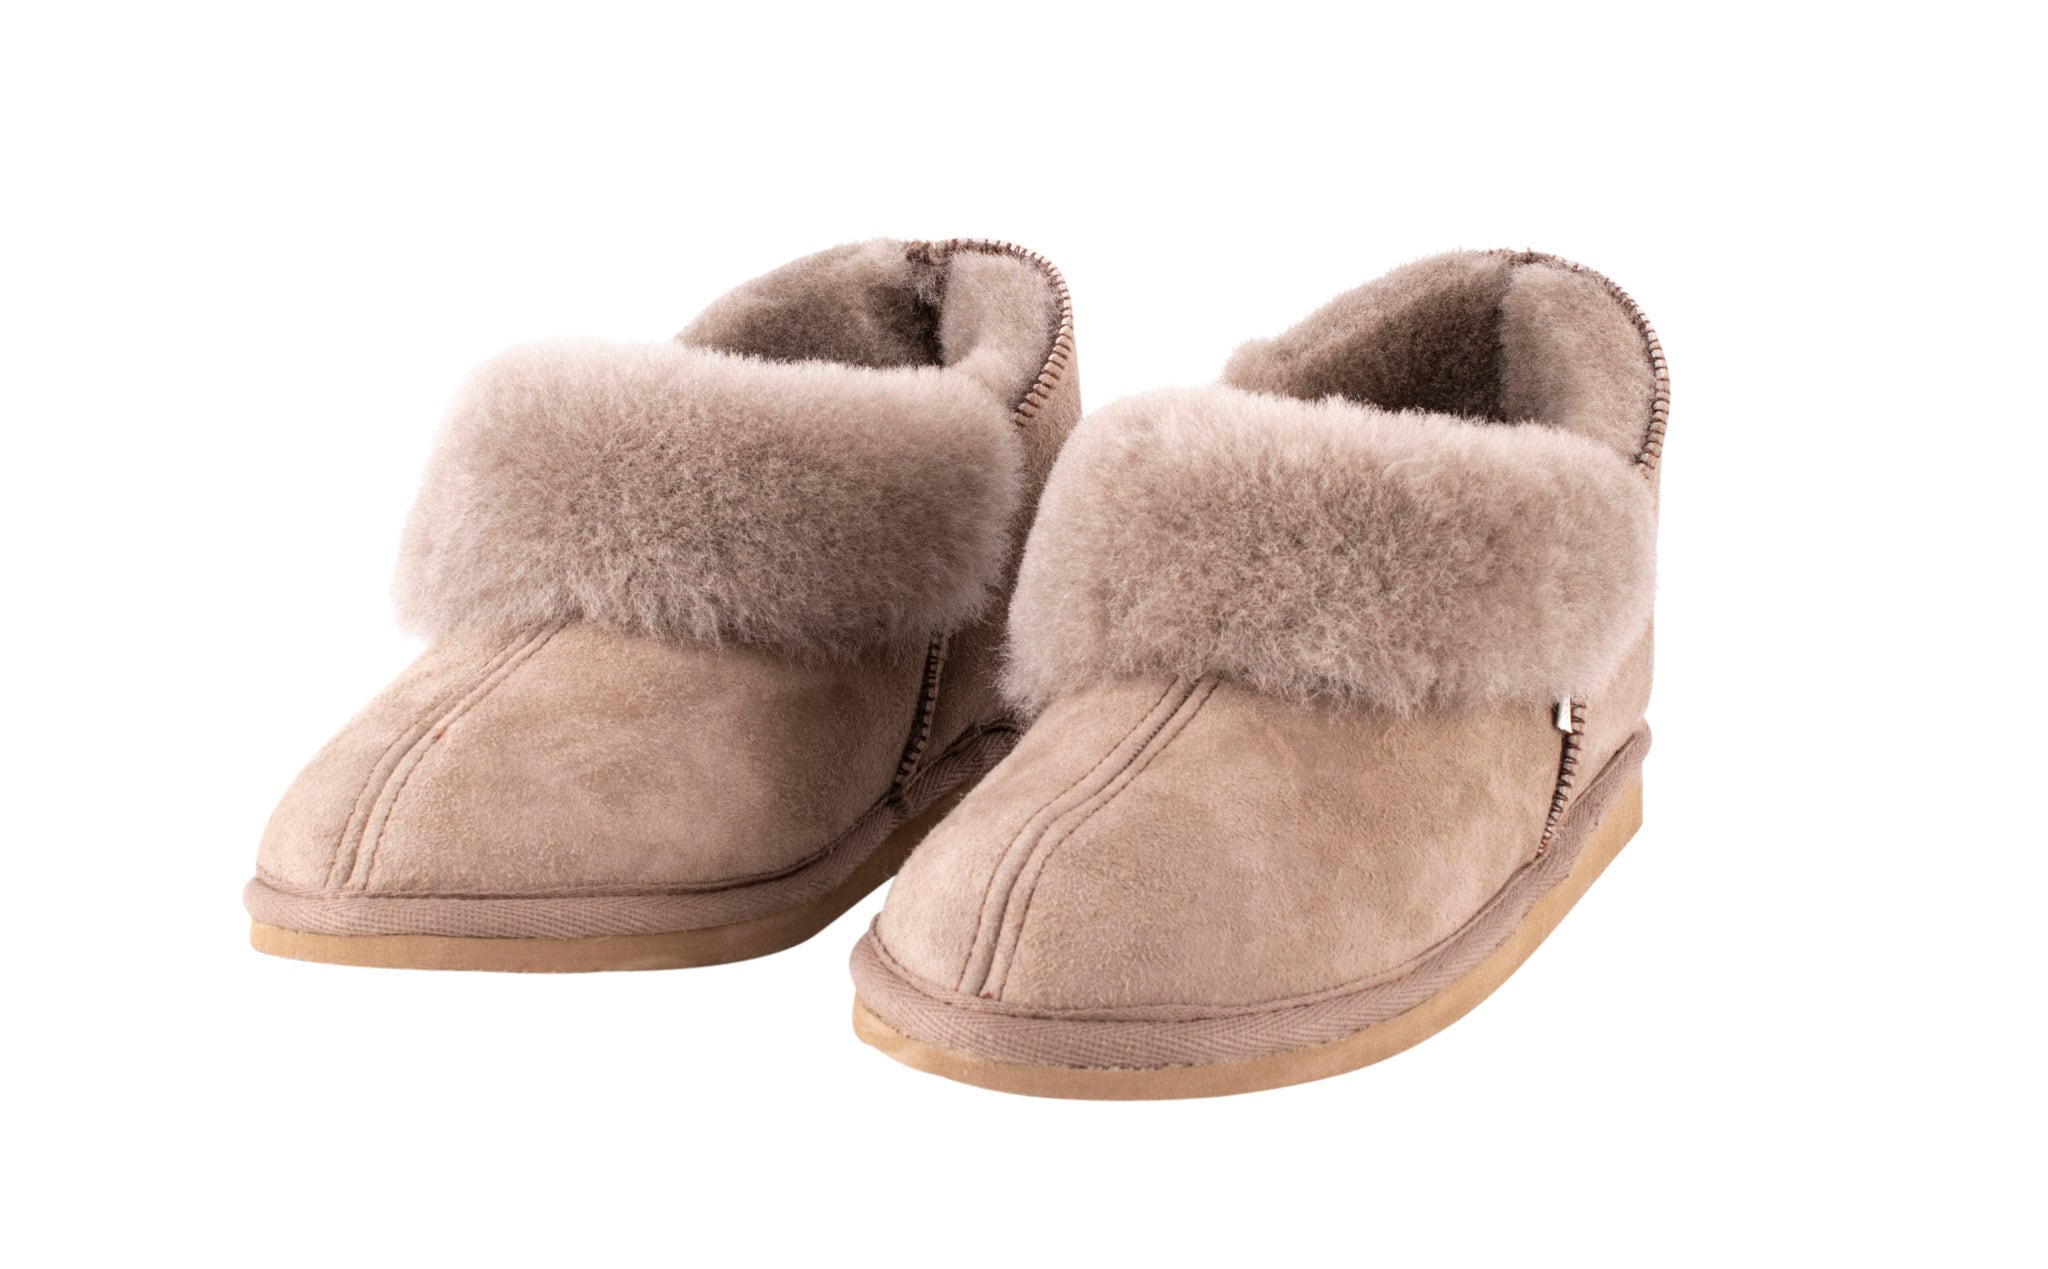 Shepherd Karin slippers